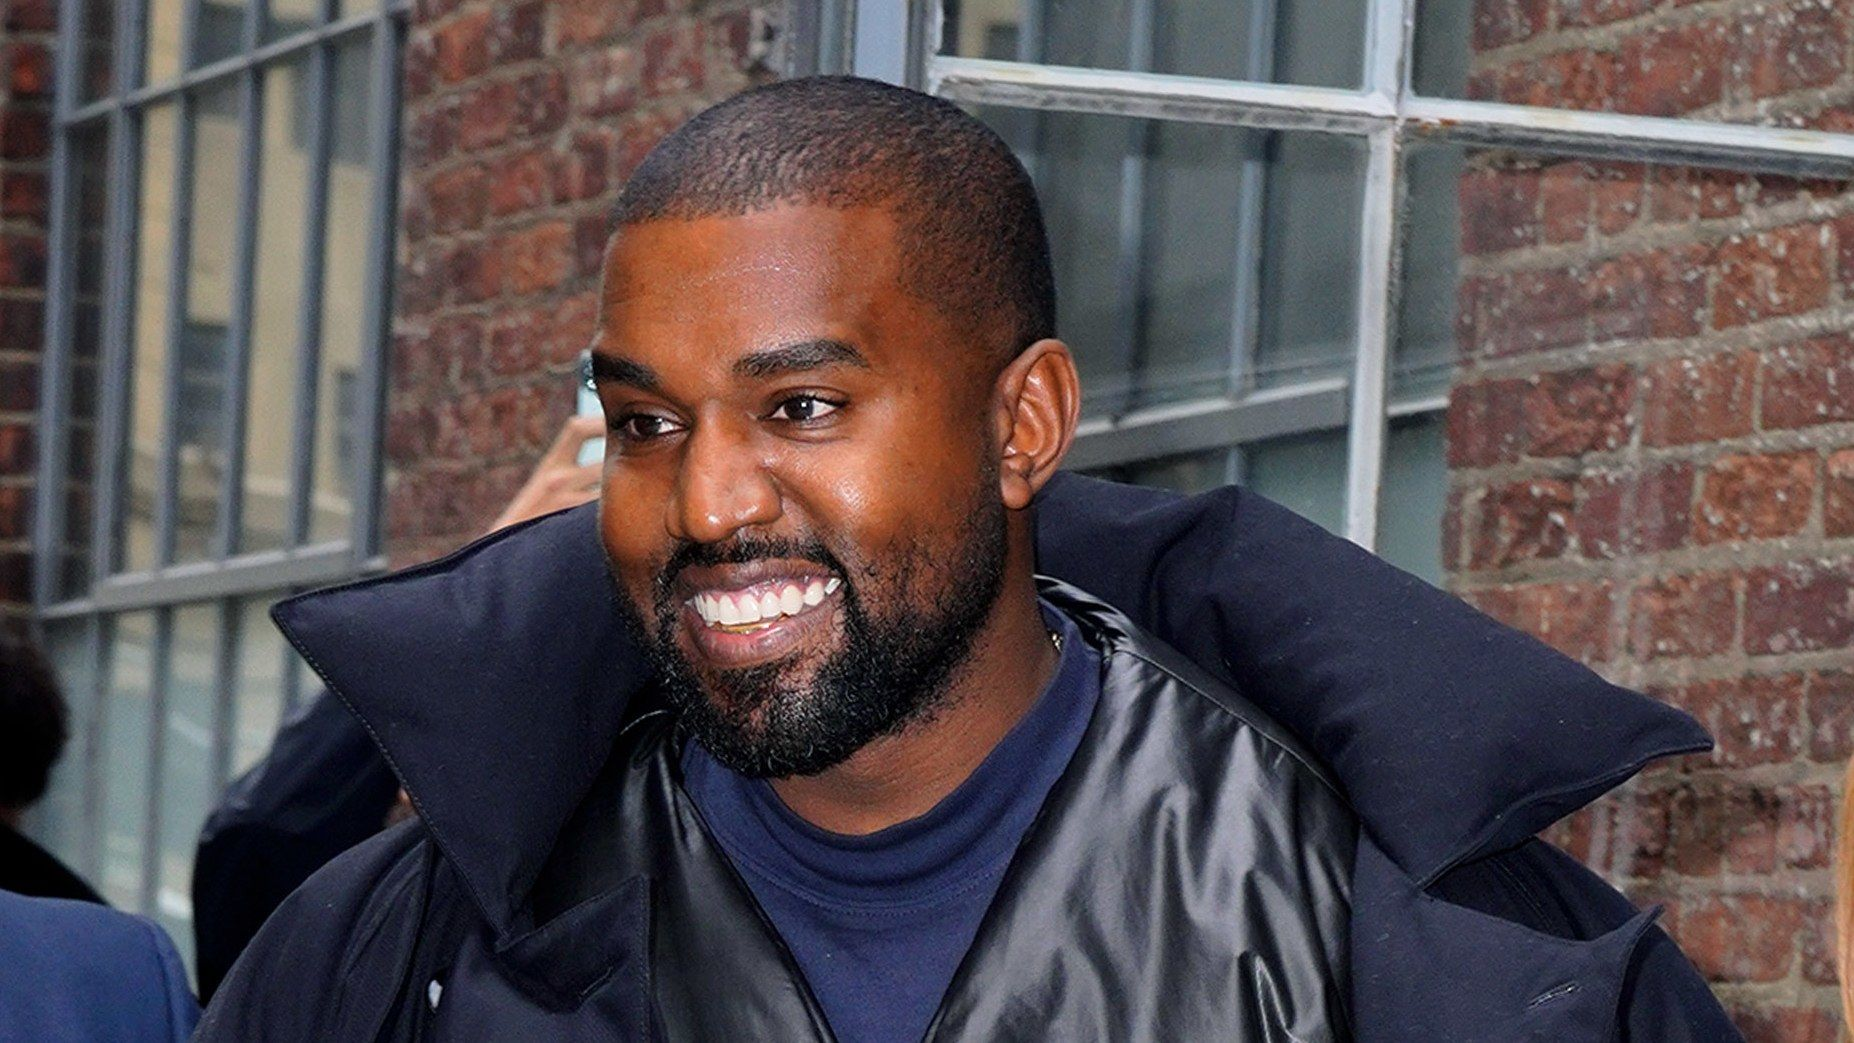 Kanye West Buys A Second Wyoming Ranch For 14 495 Million Kanye West Kanye West And Kim Kanye